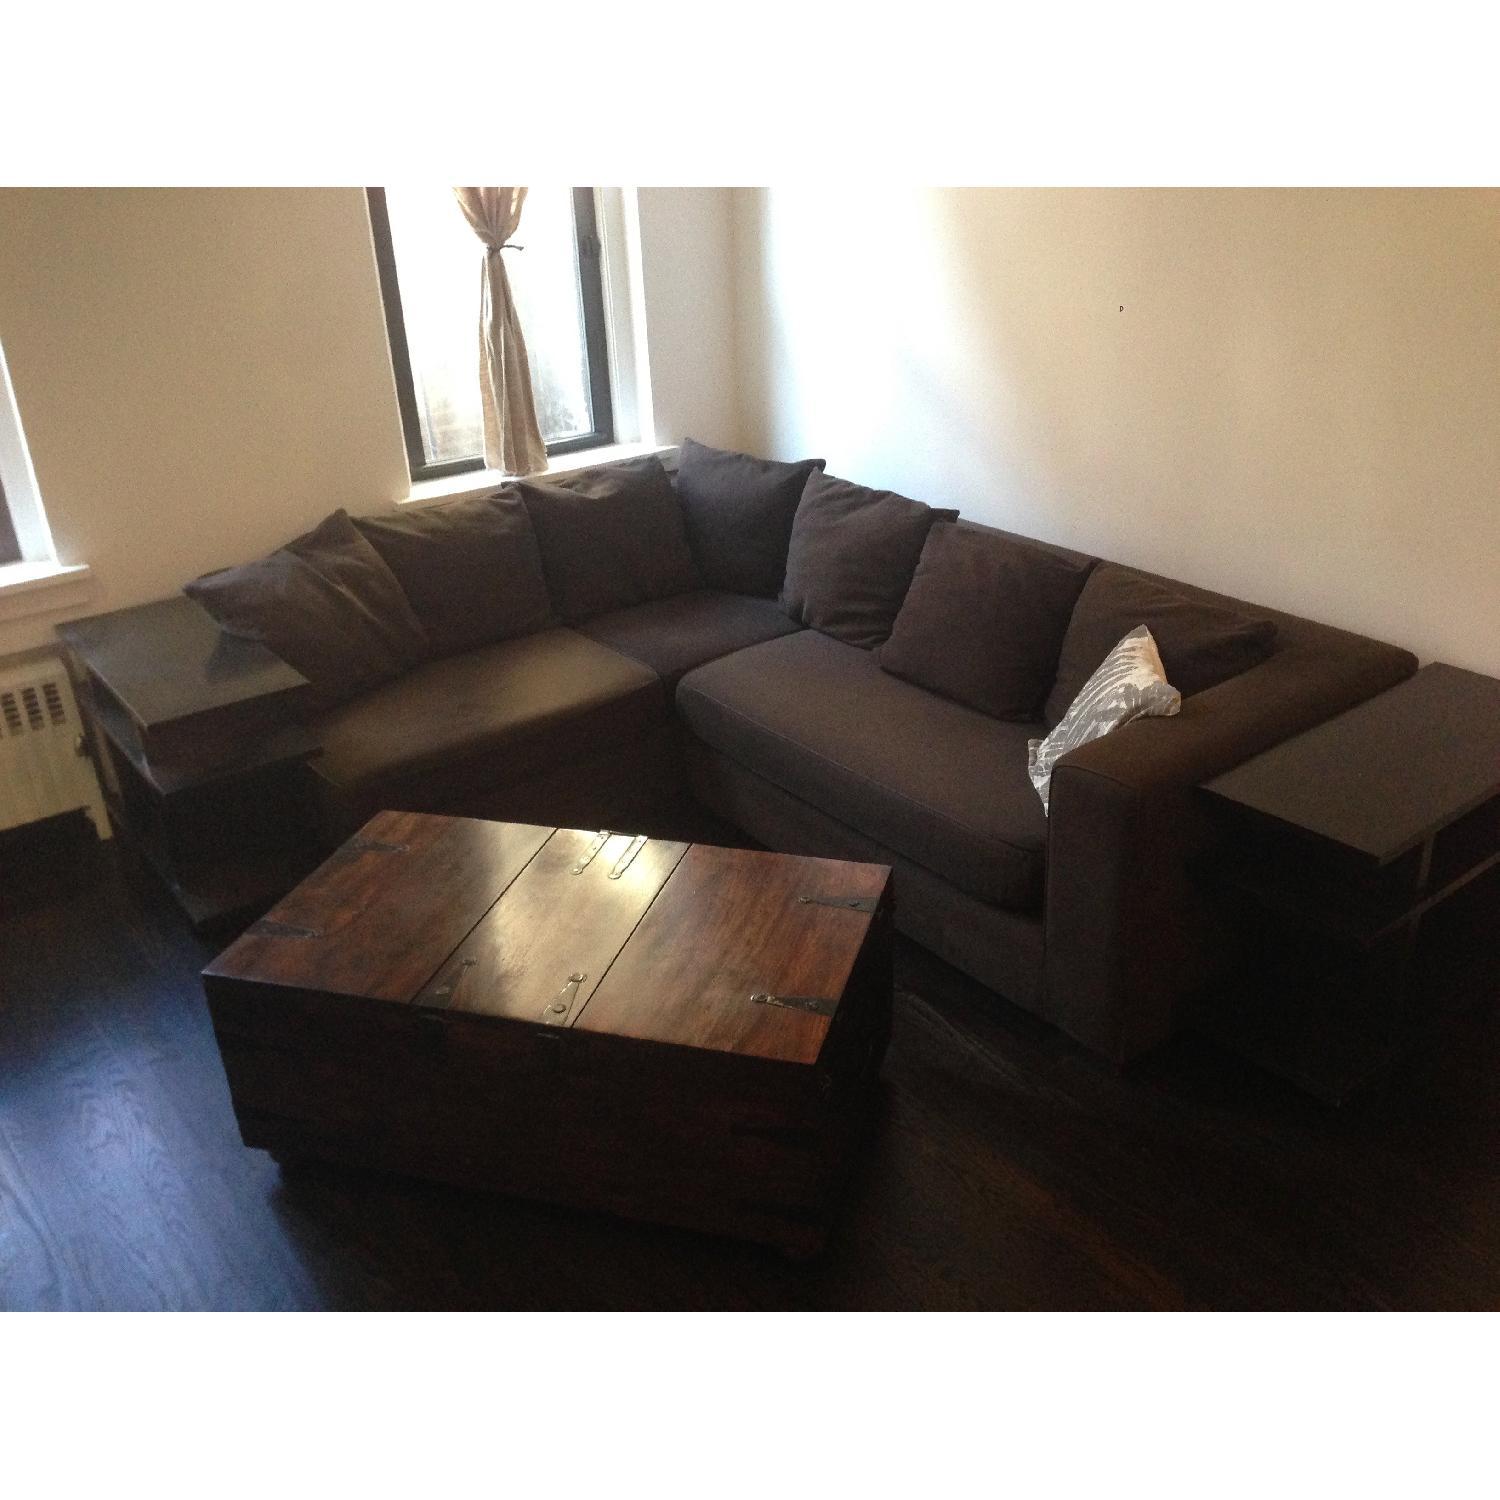 West Elm Walton 3 Piece Sectional Sofa in Brown - image-3